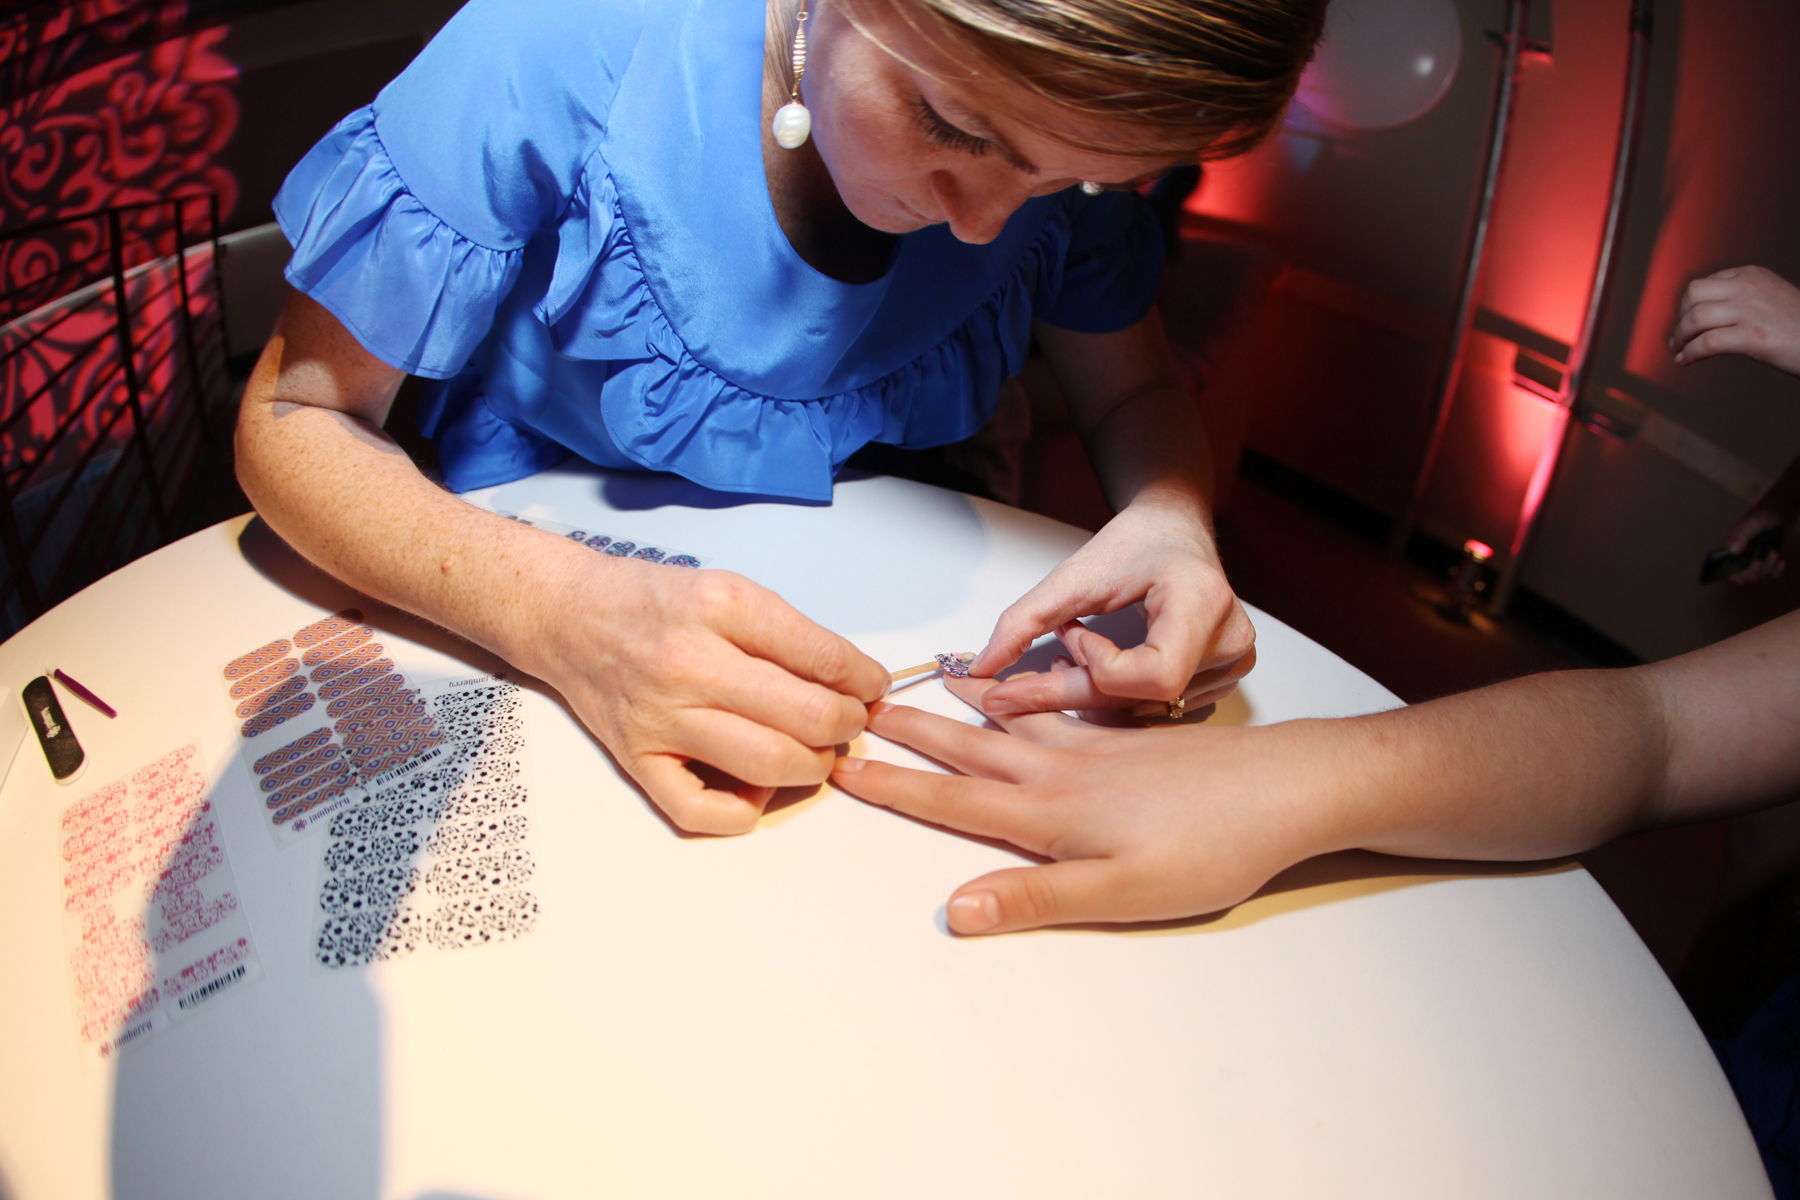 bat-mitzvah-manicure-jamberry-activities.JPG